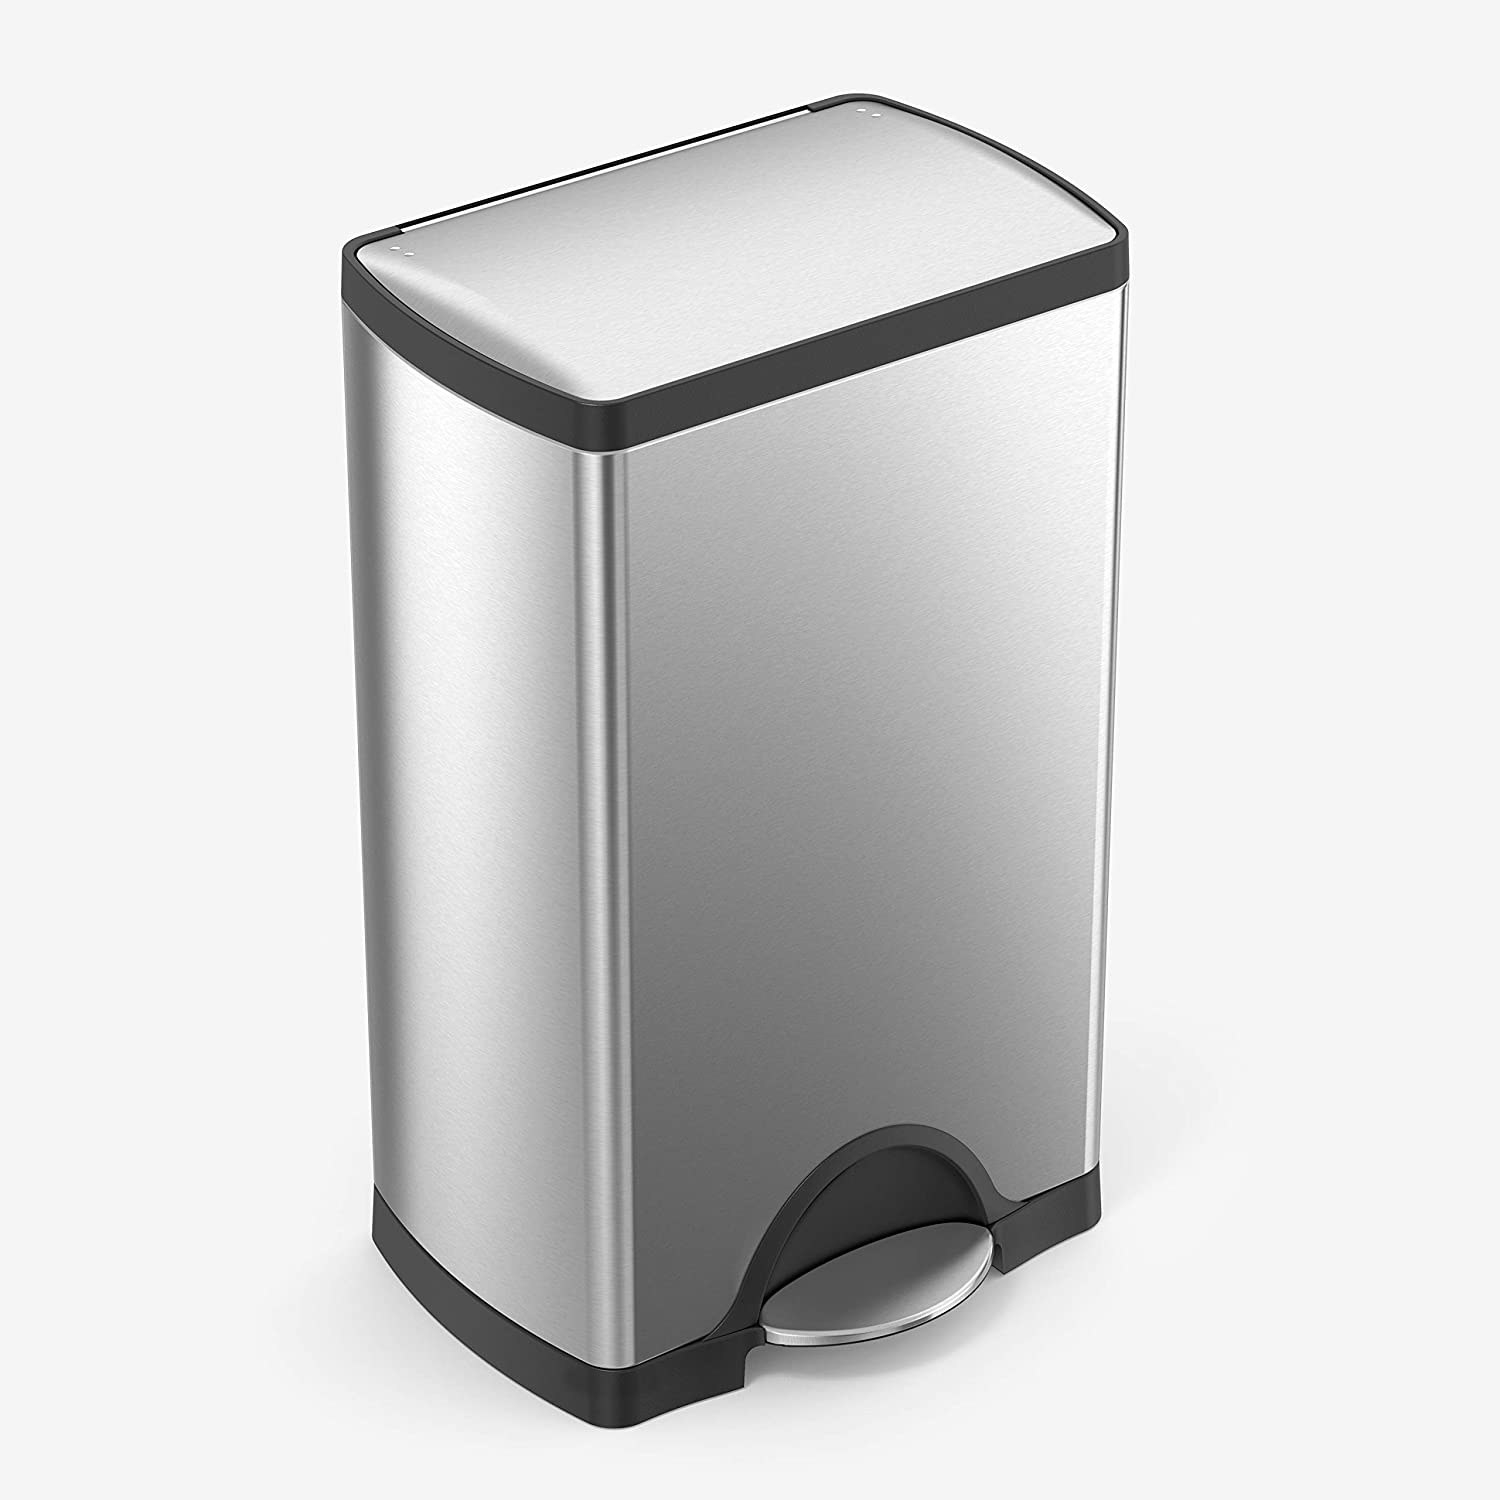 the stainless steel trash can with a foot pedal